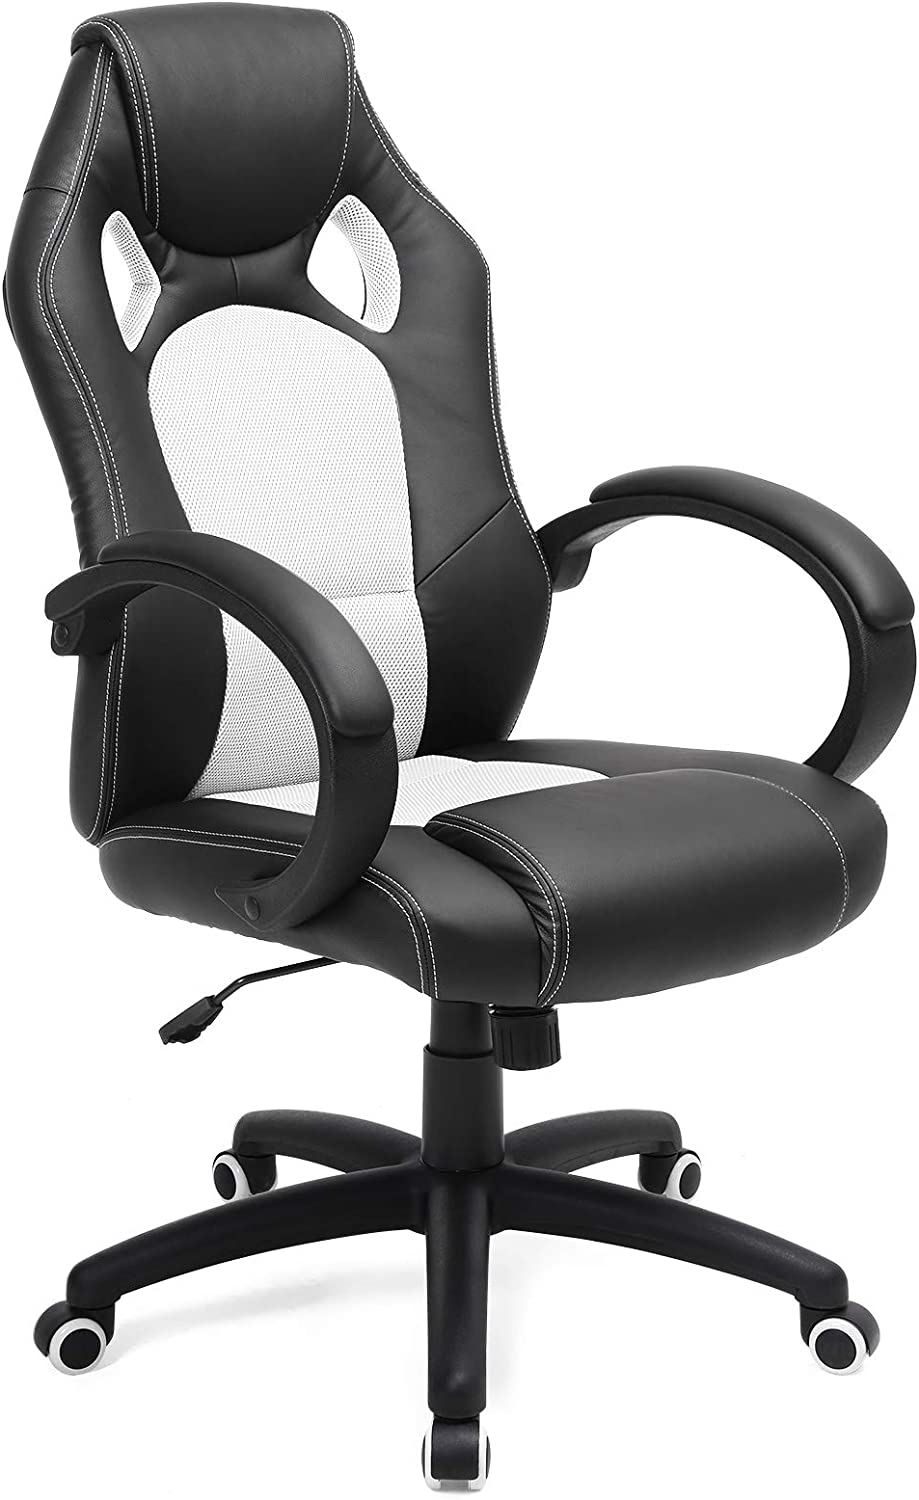 SONGMICS Racing Silla de Escritorio de Oficina Ergonómica Regulable con Ruedas, OBG56BW, Blanco